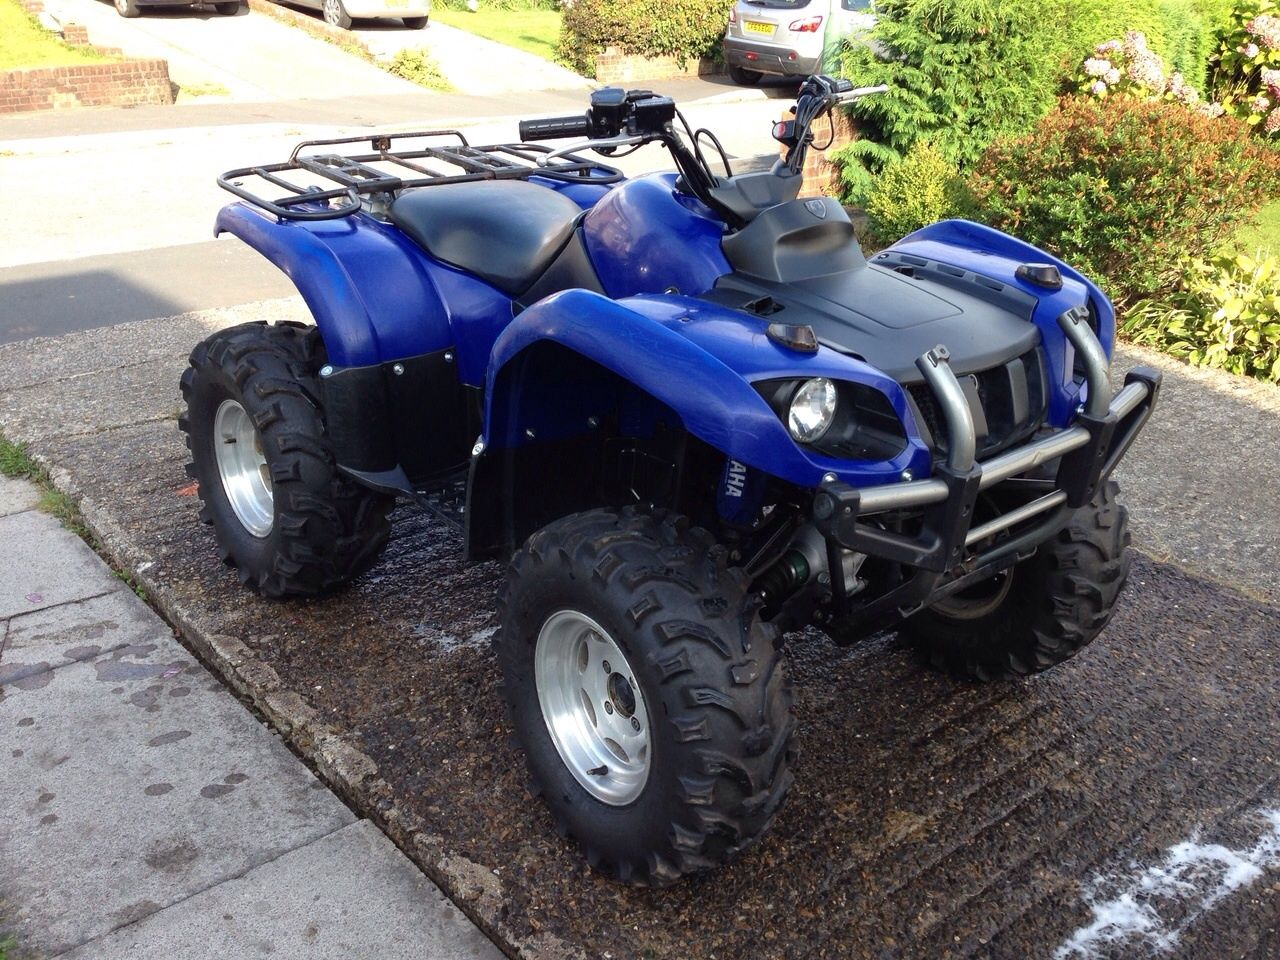 Yamaha grizzly 660 727cc road legal atv 2006 4x4 not for Yamaha raptor oil type